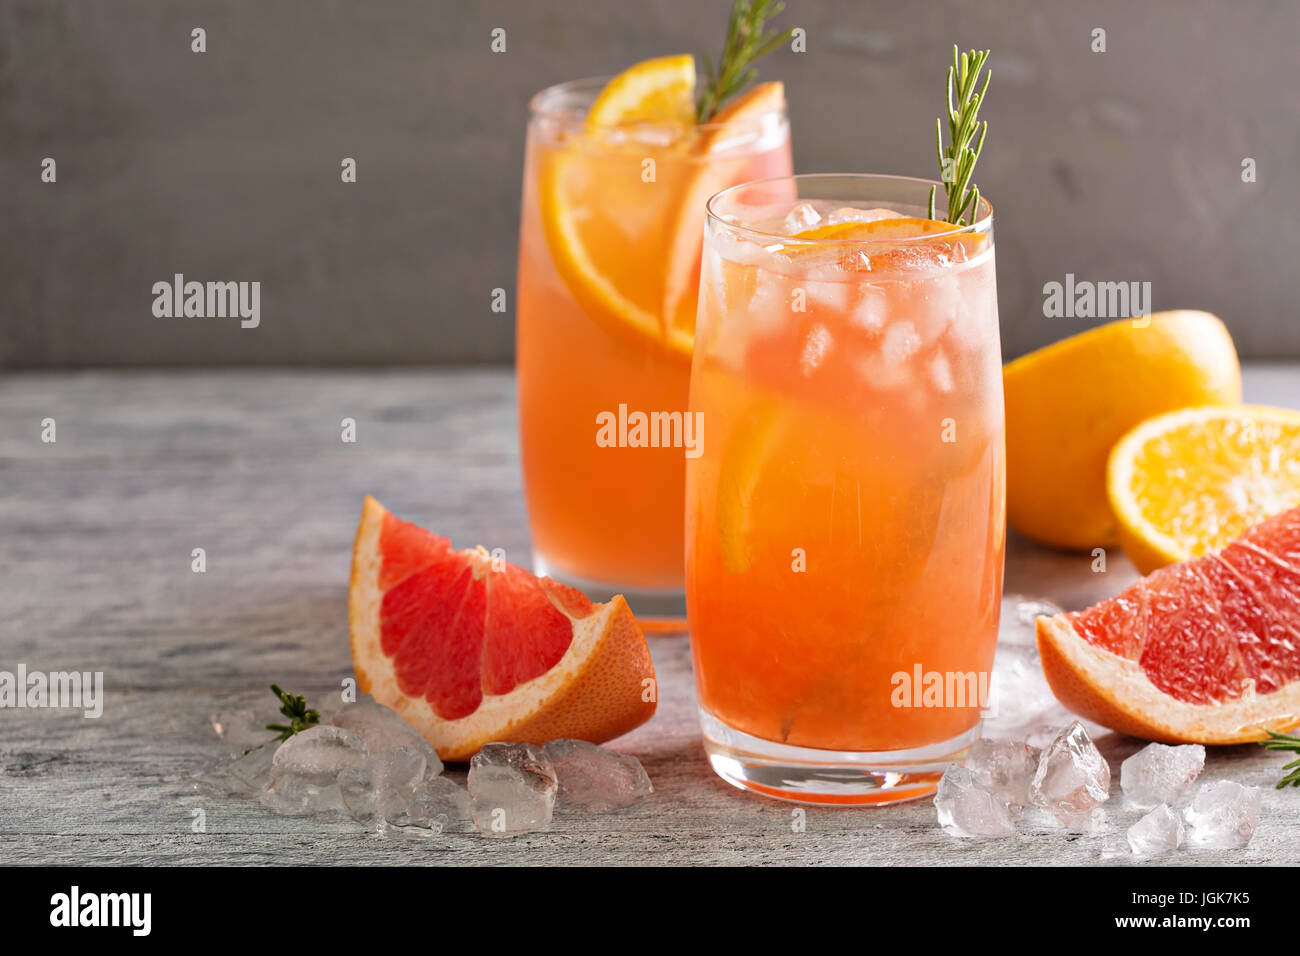 Citrus cocktail with grapefruit and orange - Stock Image